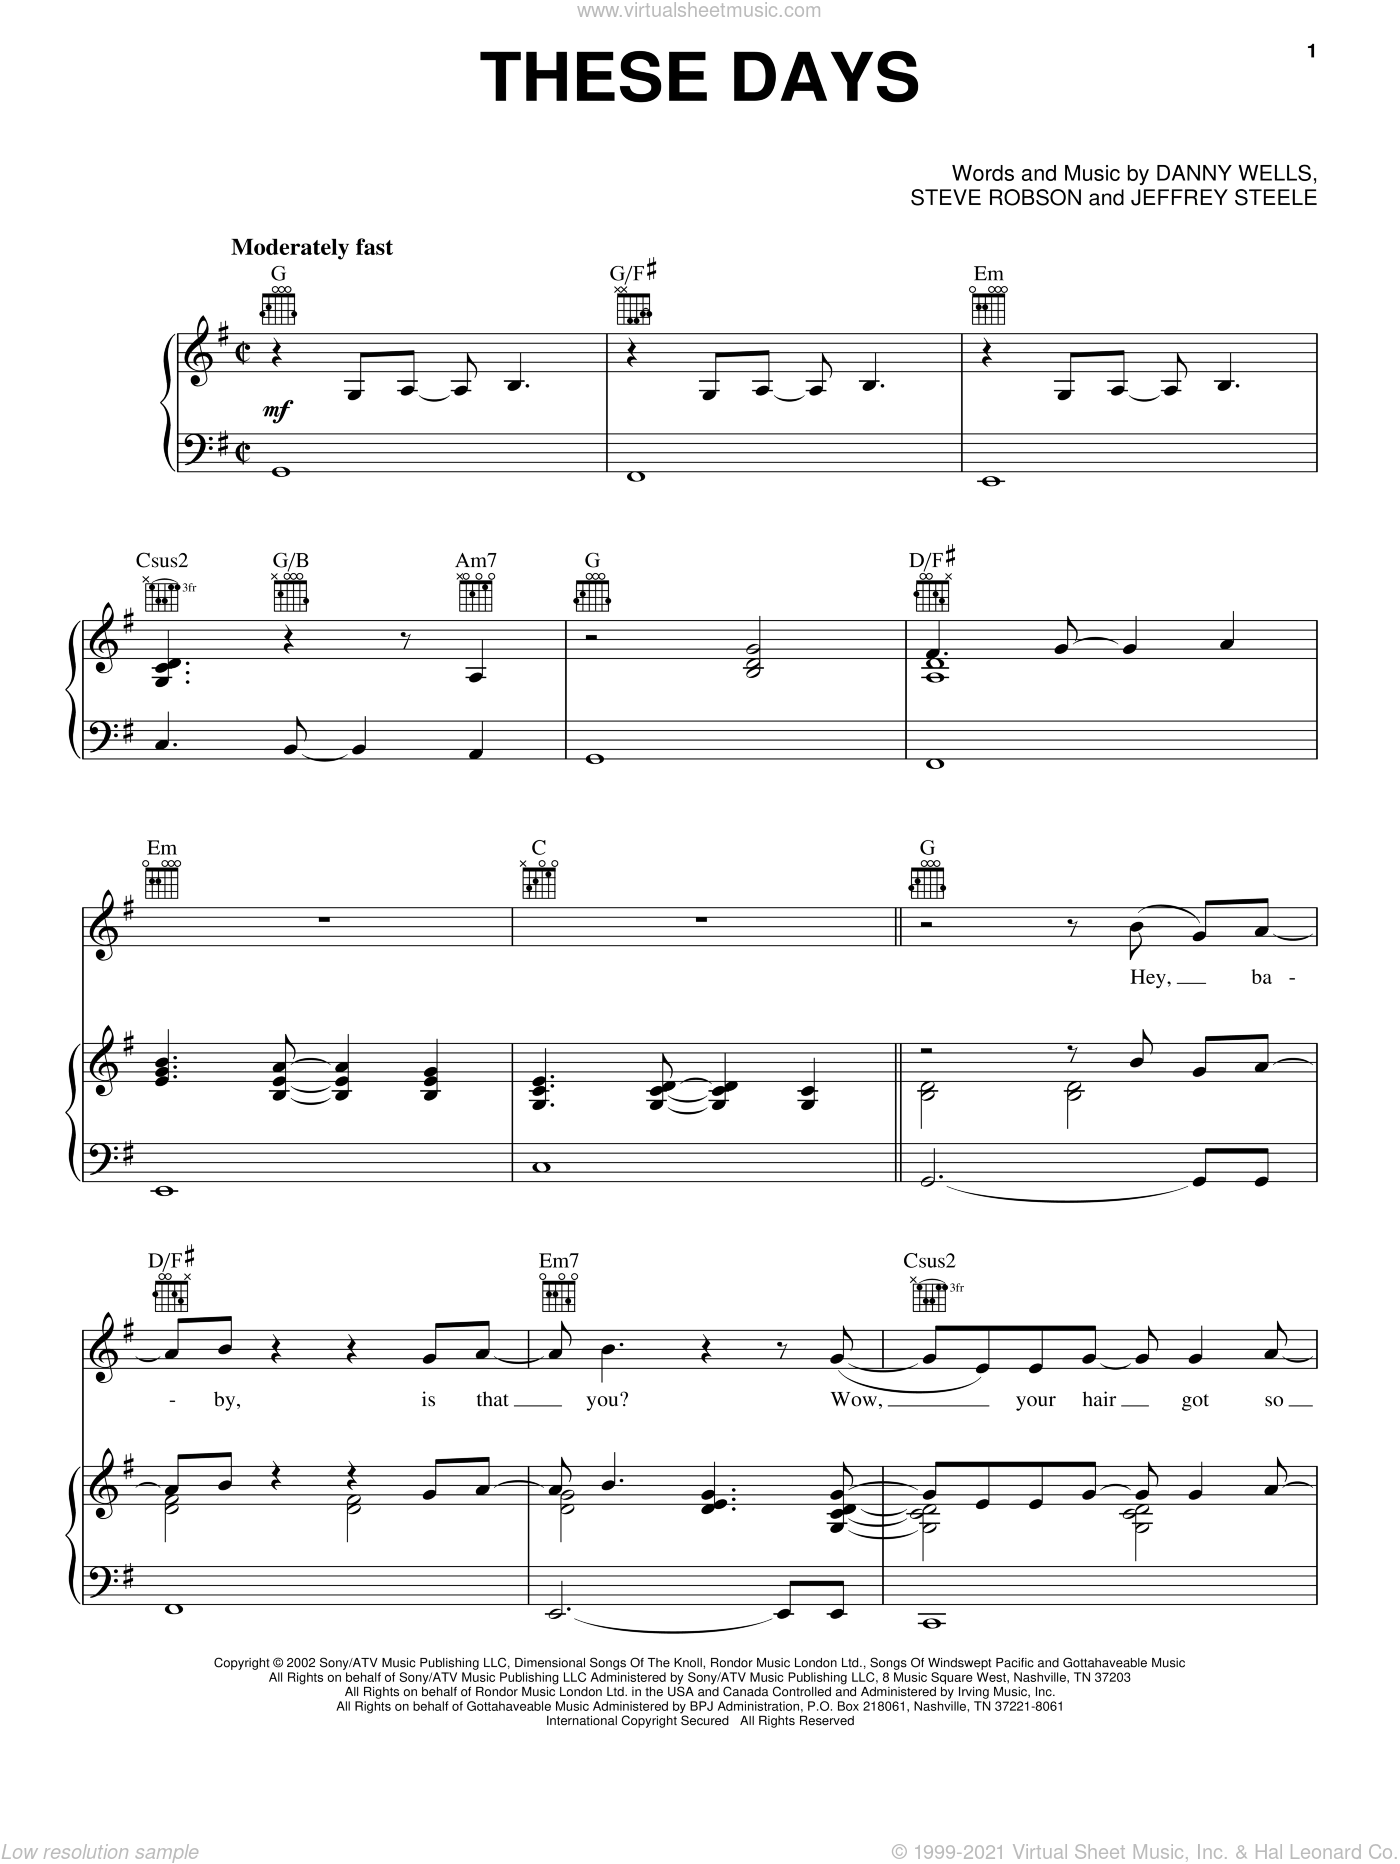 These Days sheet music for voice, piano or guitar by Steve Robson, Rascal Flatts and Jeffrey Steele. Score Image Preview.